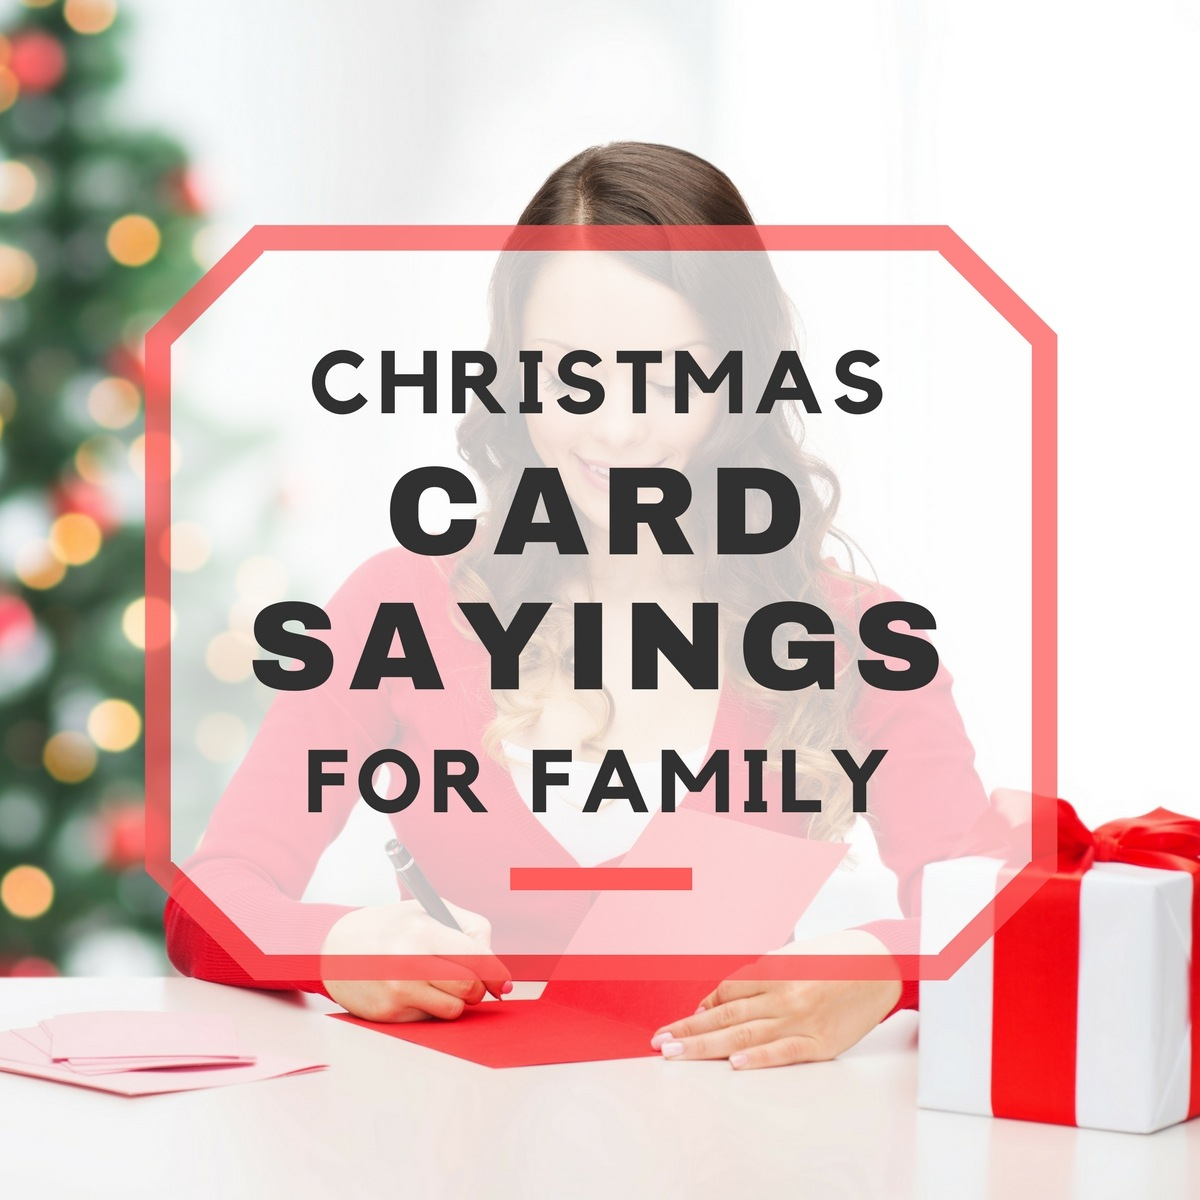 25 christmas card sayings for family 25 christmas card sayings for family